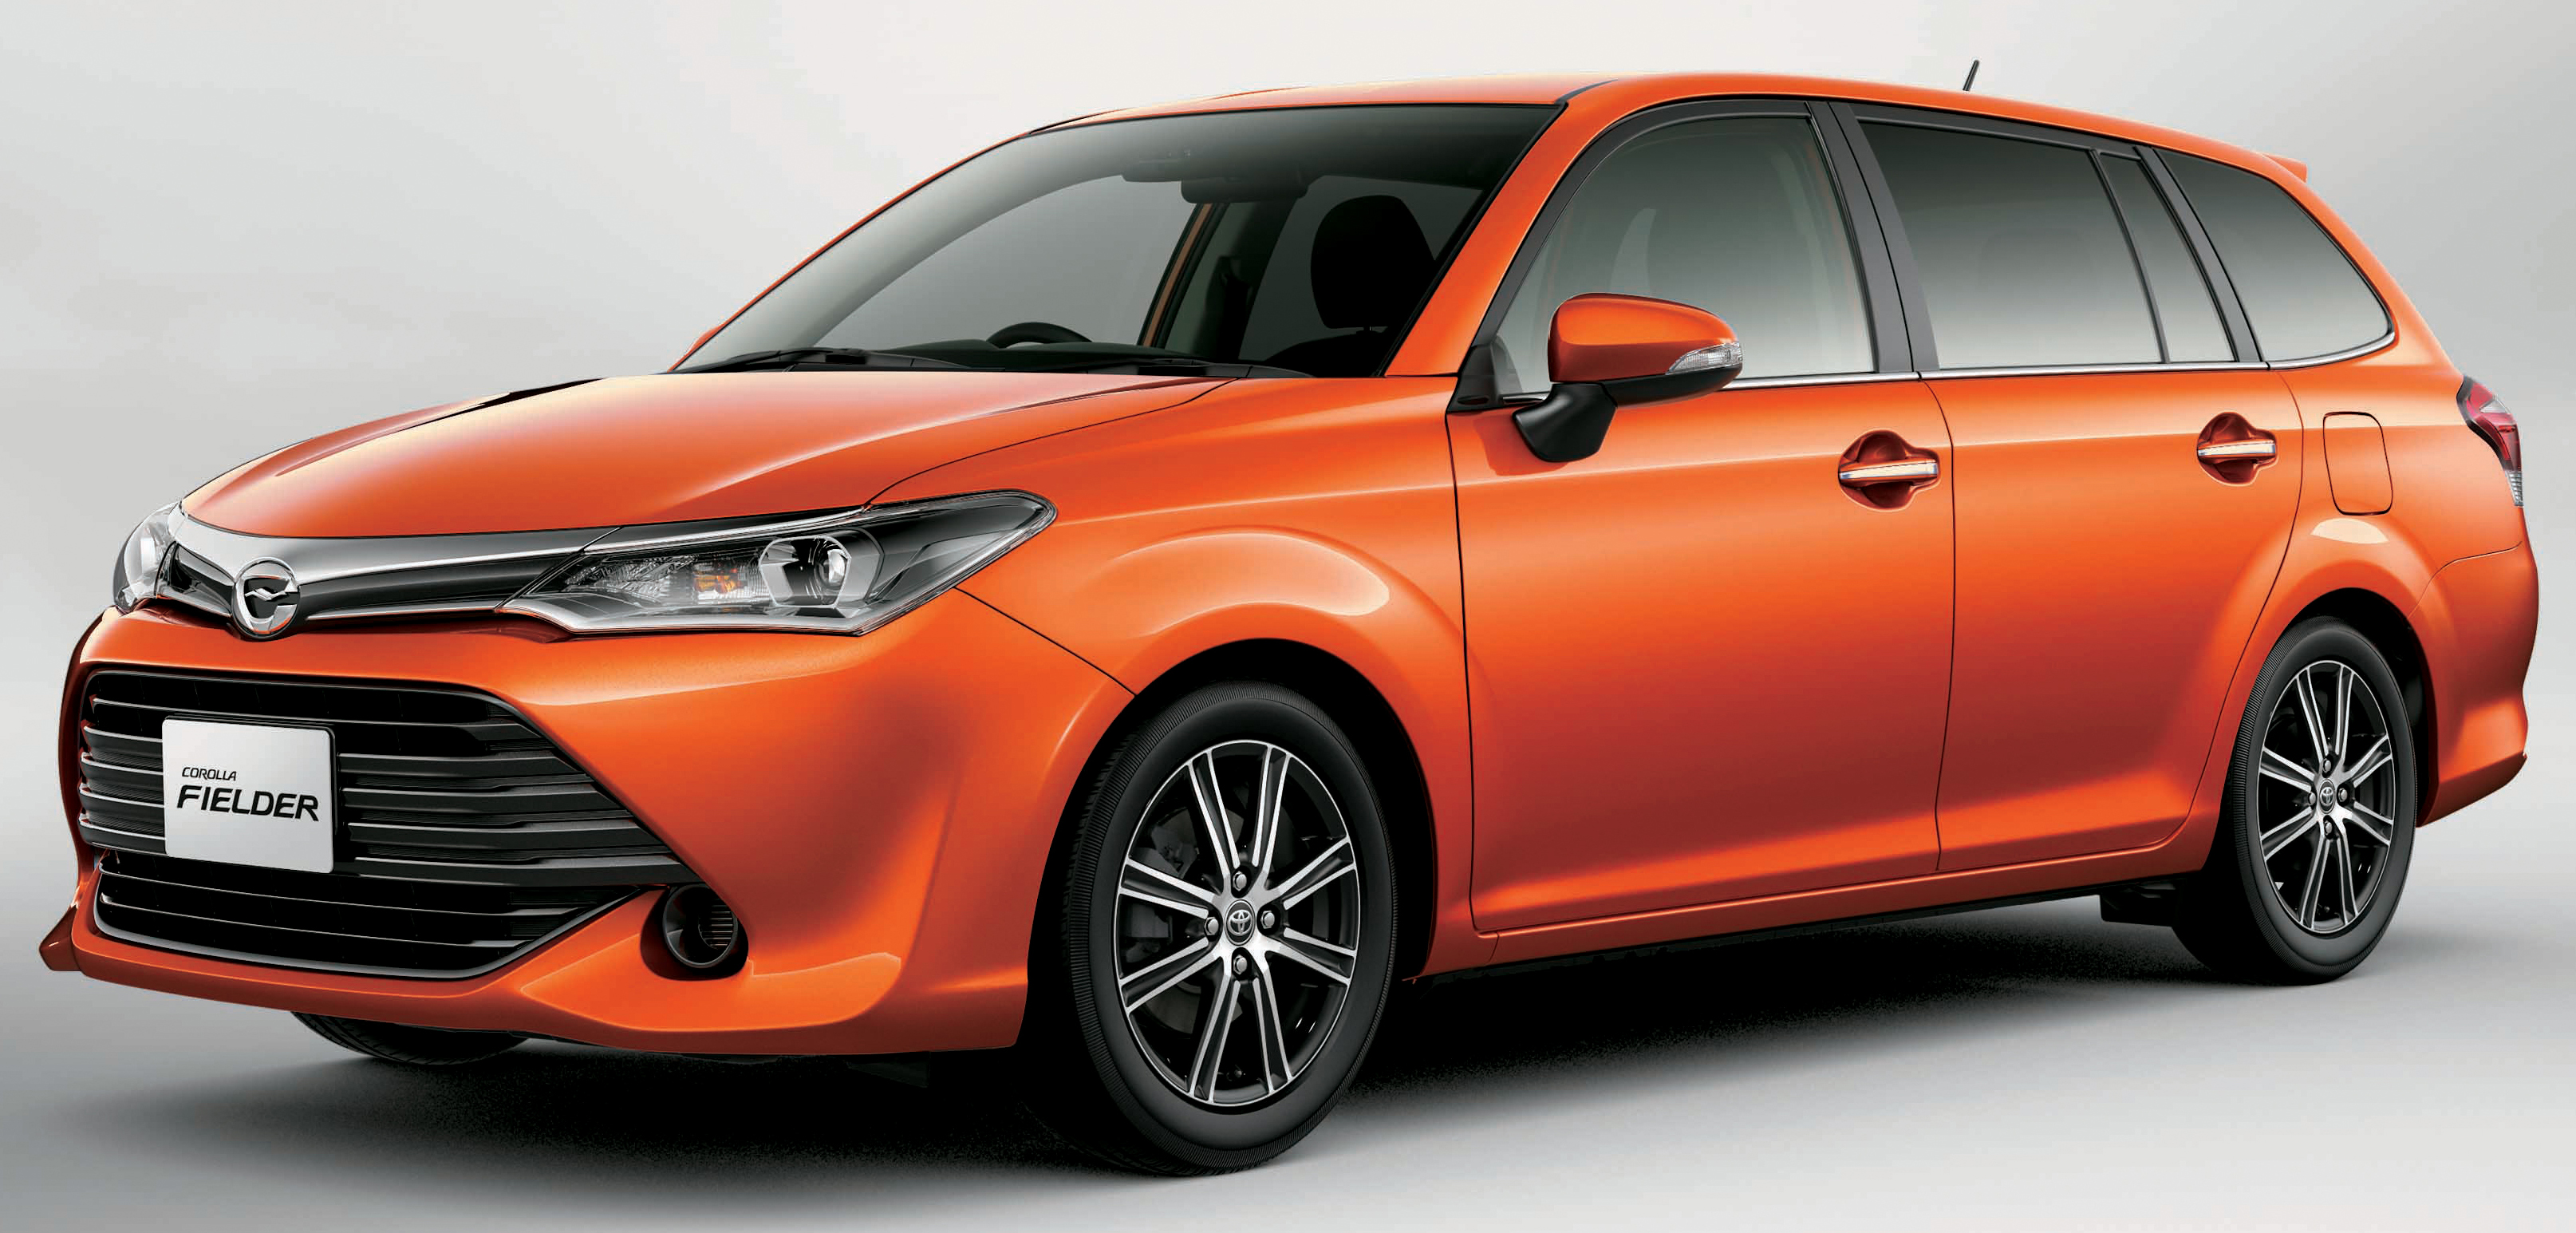 2014 Toyota Corolla For Sale >> Toyota Corolla Axio, Fielder facelift launched in Japan